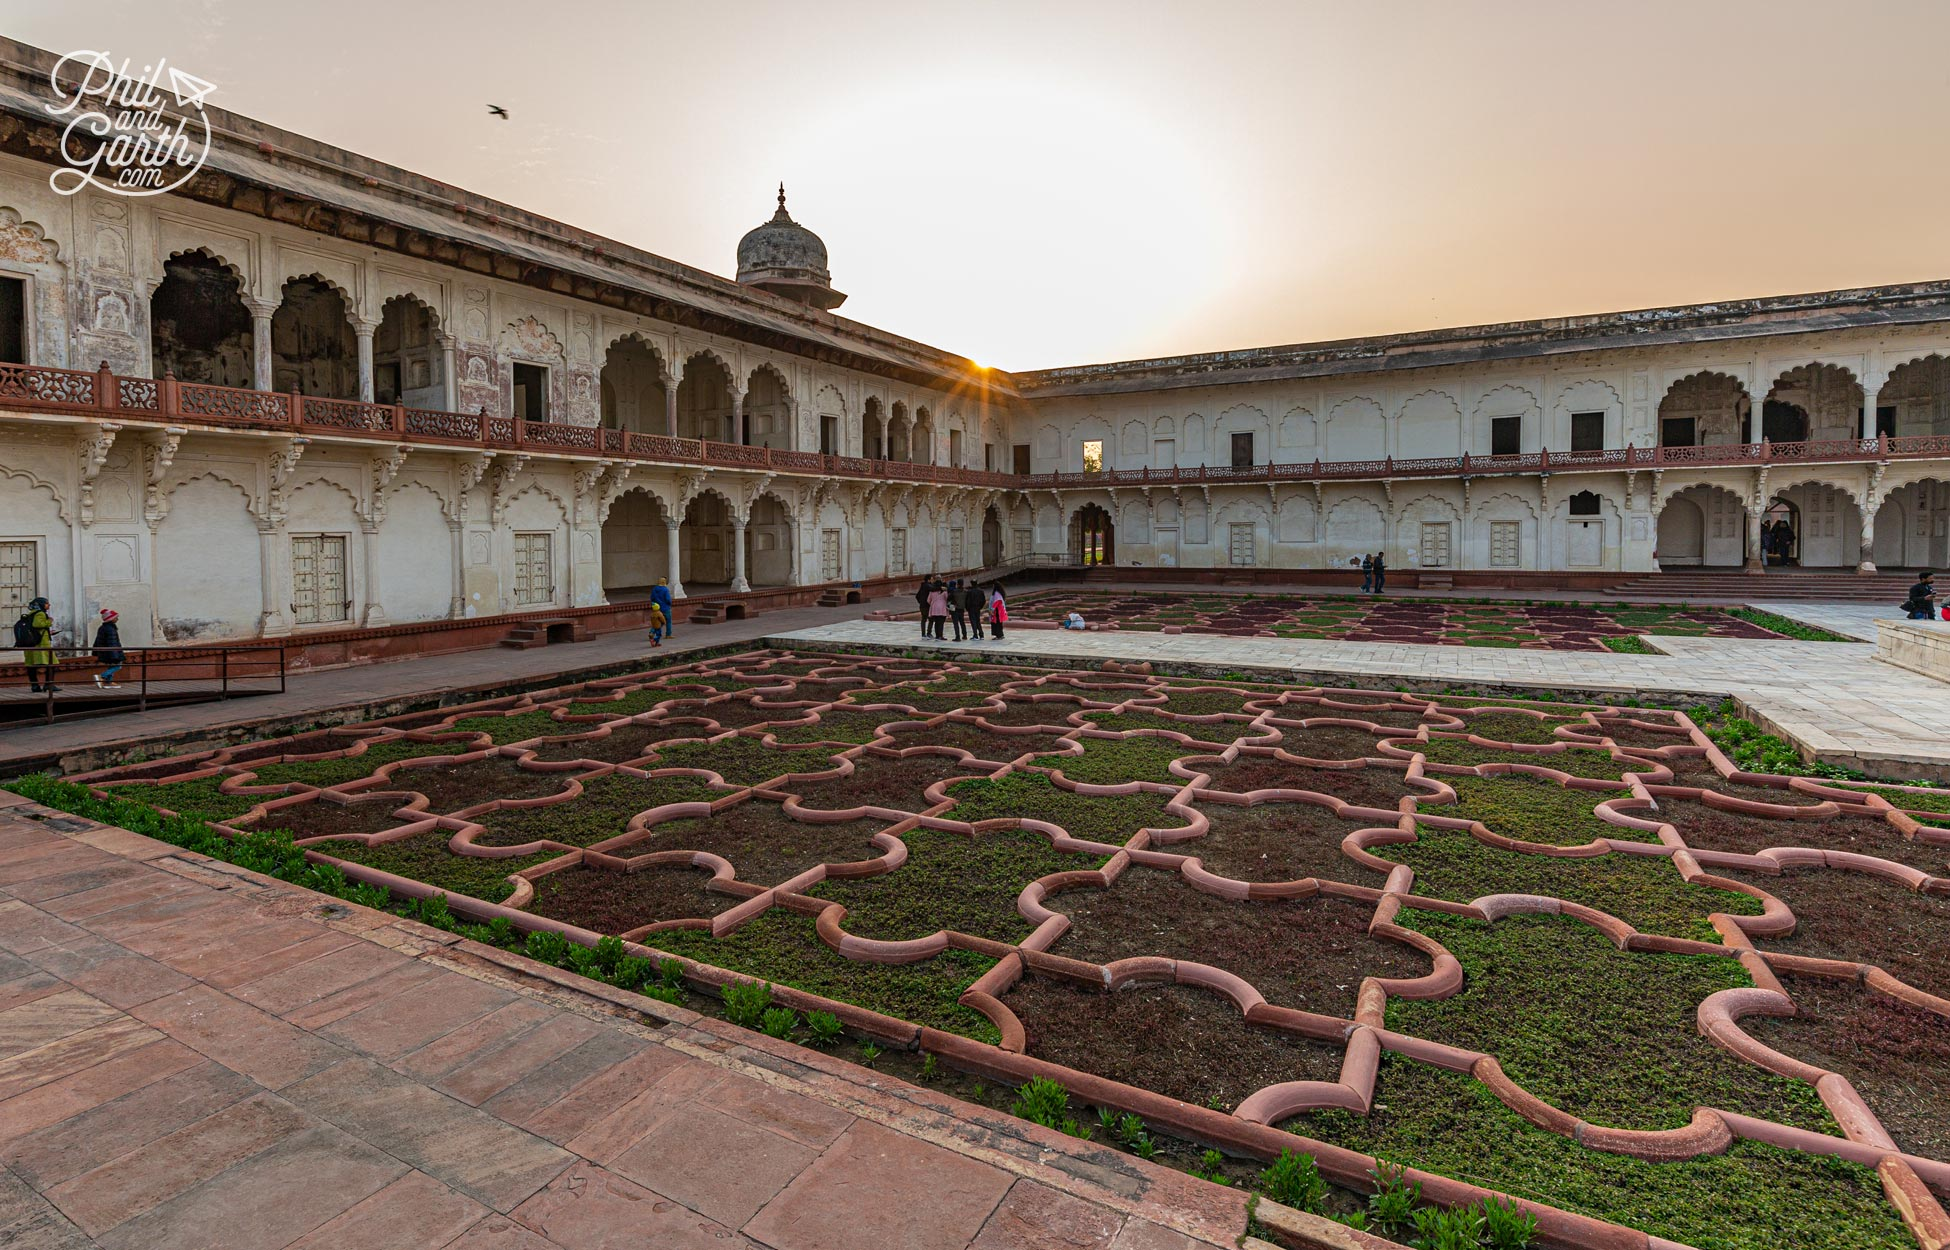 The jigsaw puzzle like patterns of Anguri Bagh - The grape garden